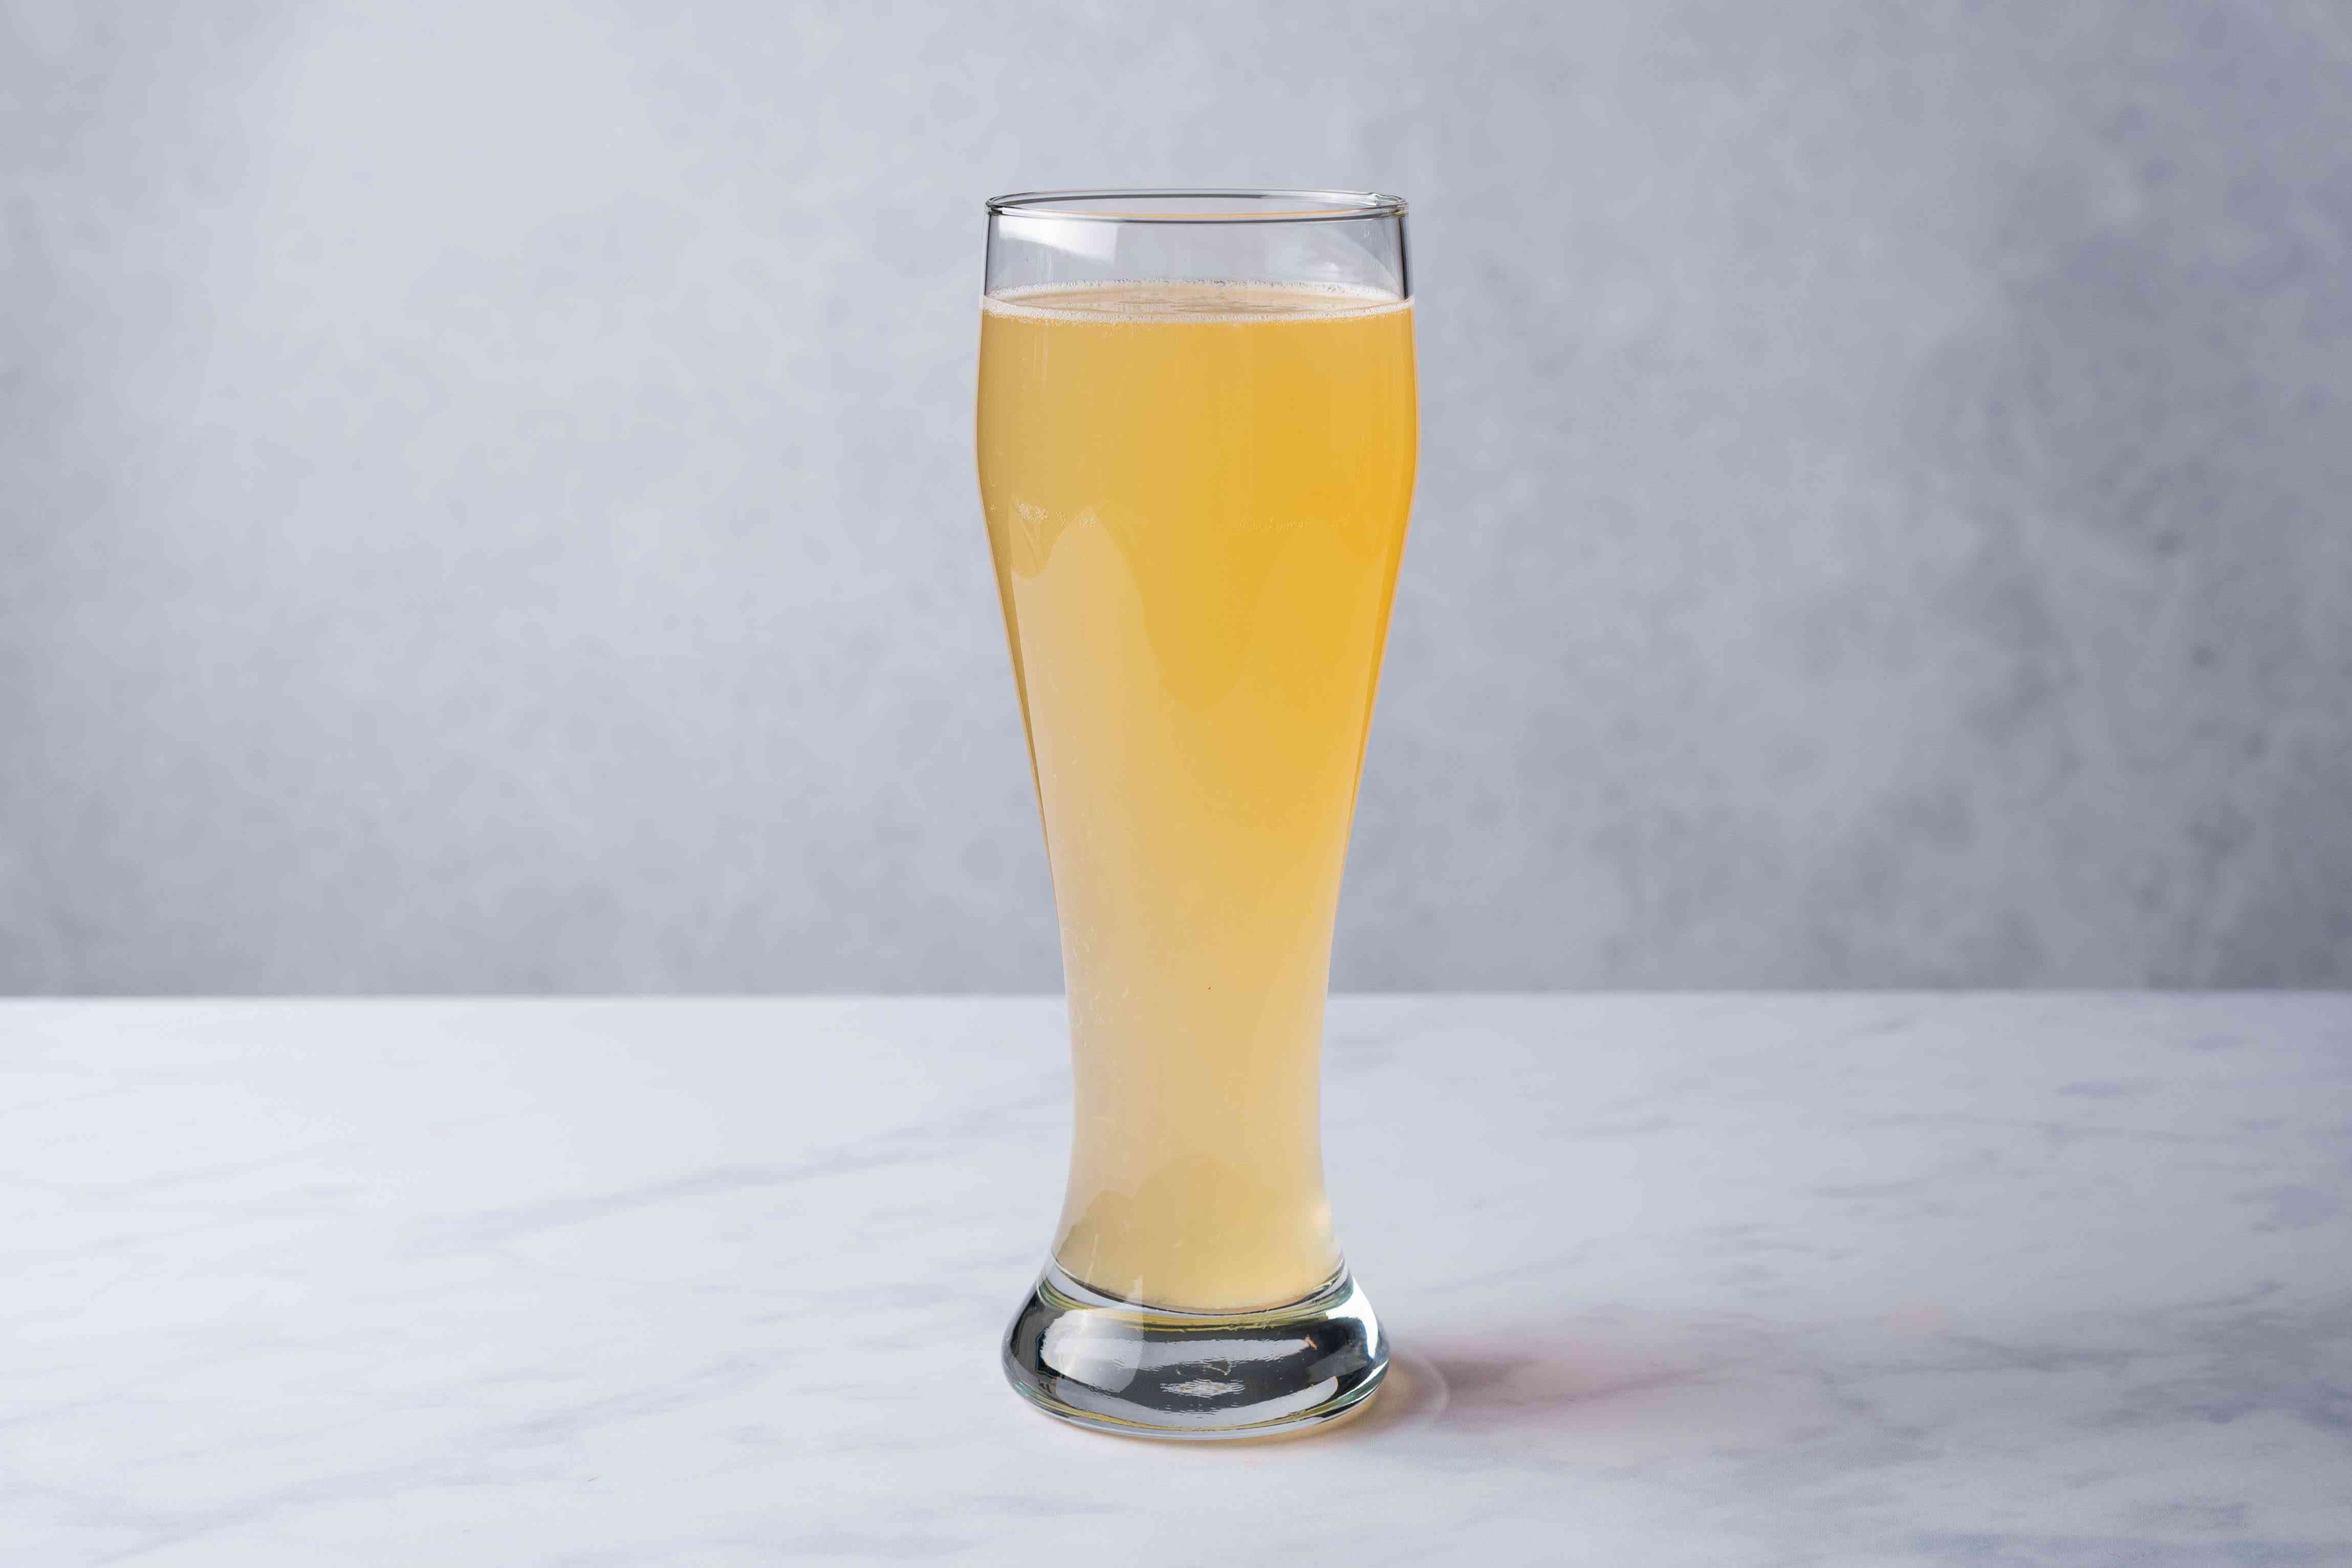 Fill the rest of the beer glass with lemonade